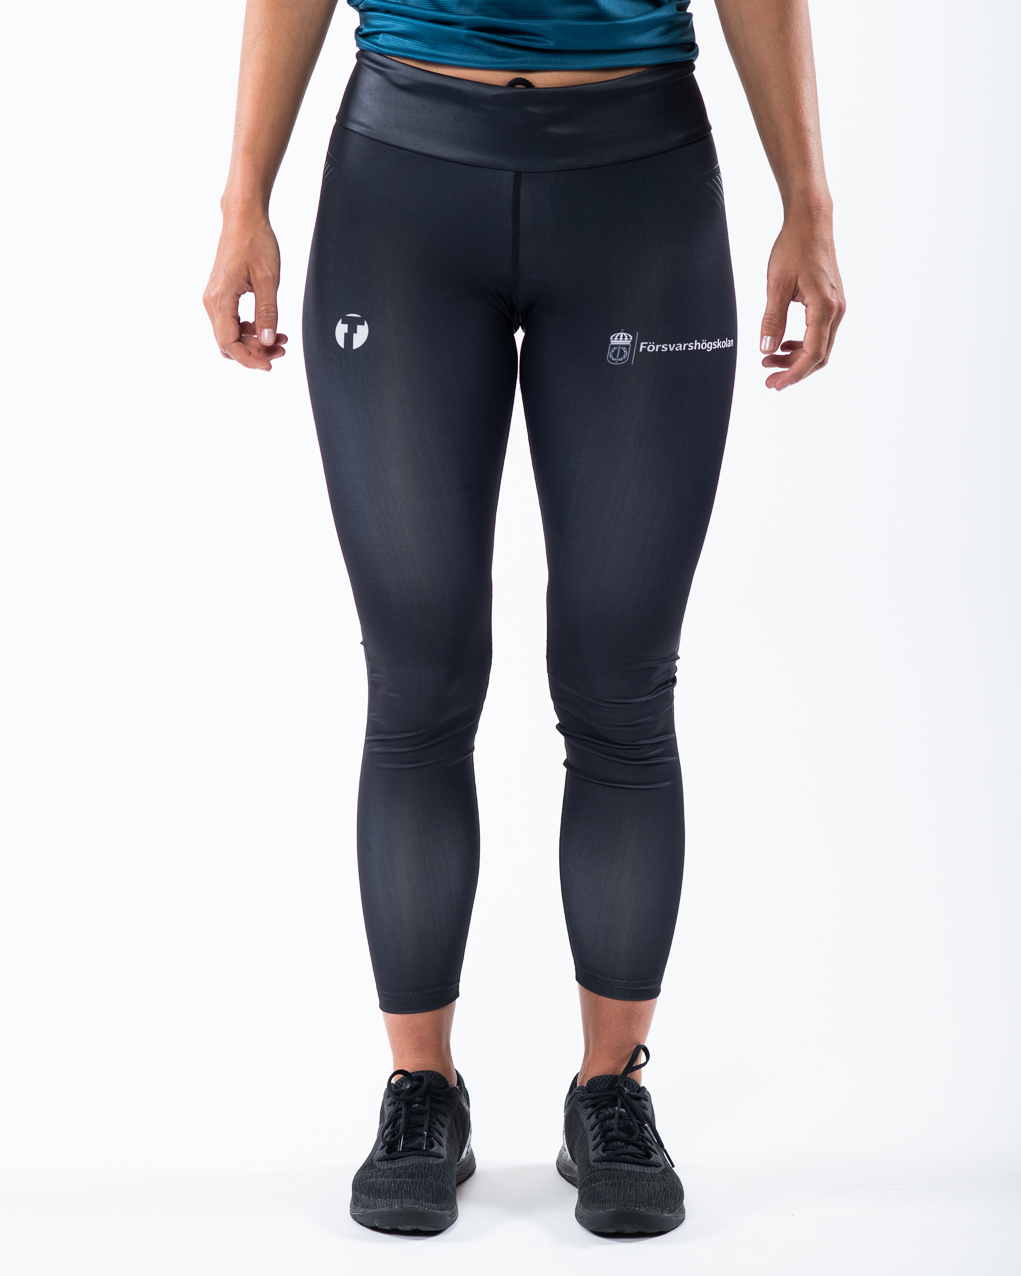 Women's tights front